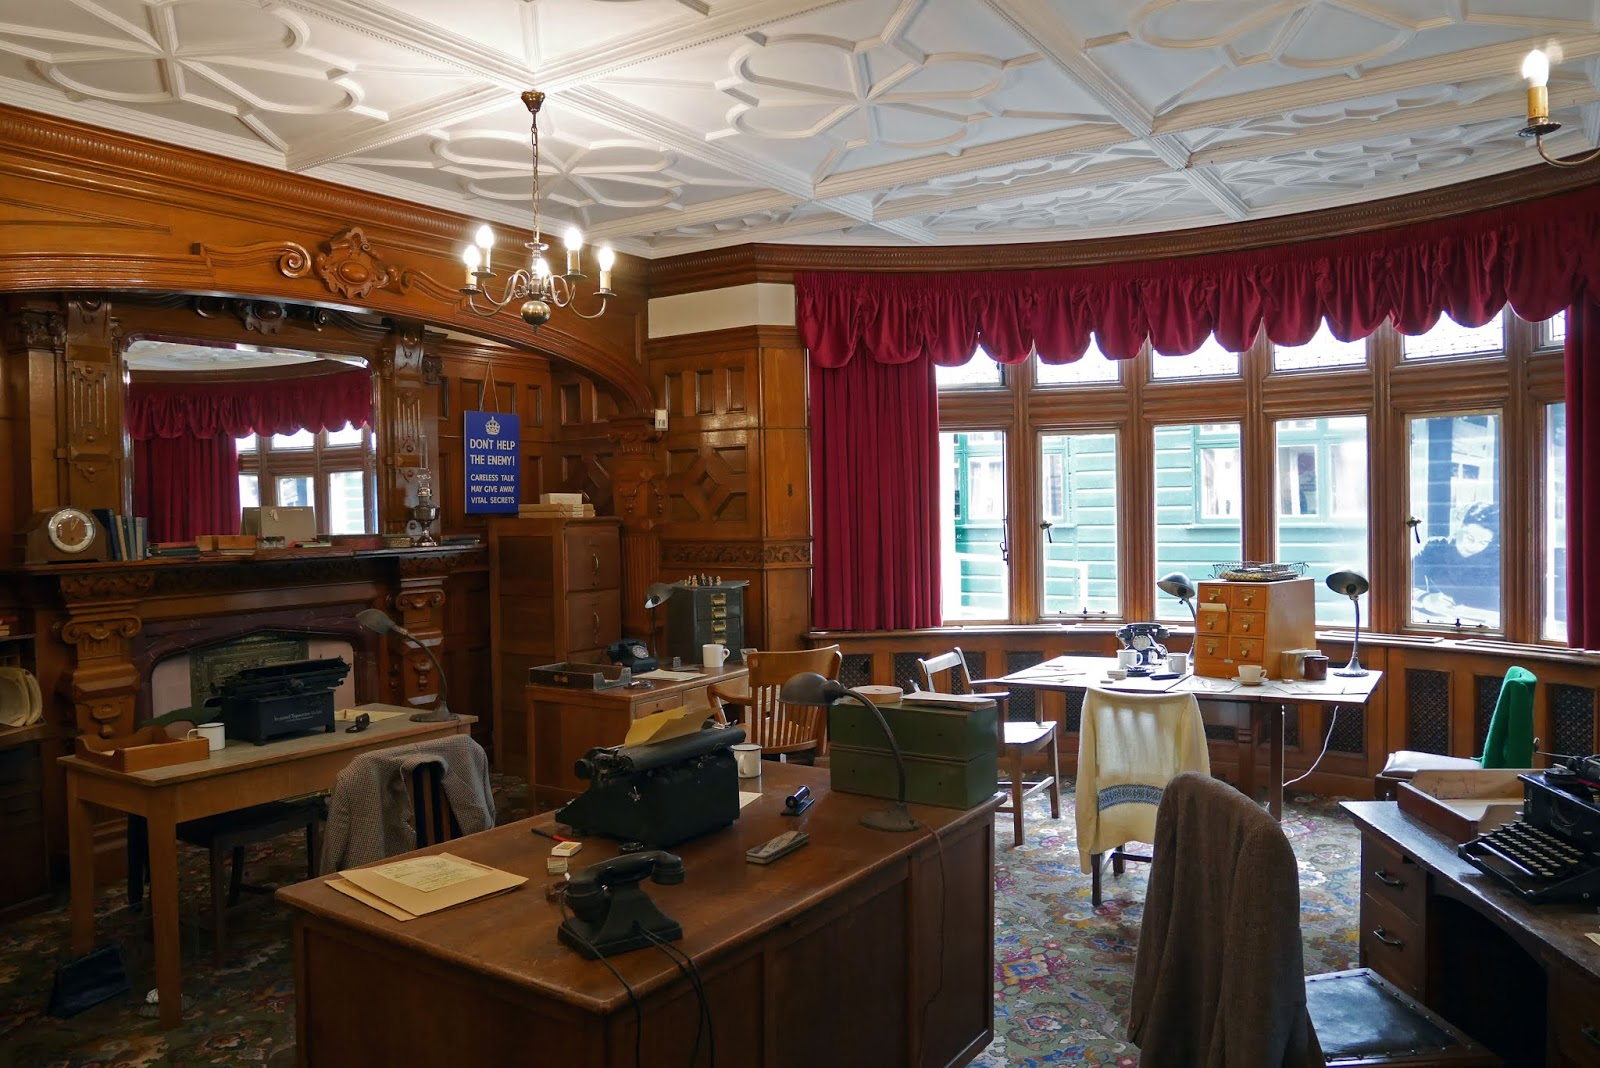 The Head of the Government Code and Cypher School's office at Bletchley Park